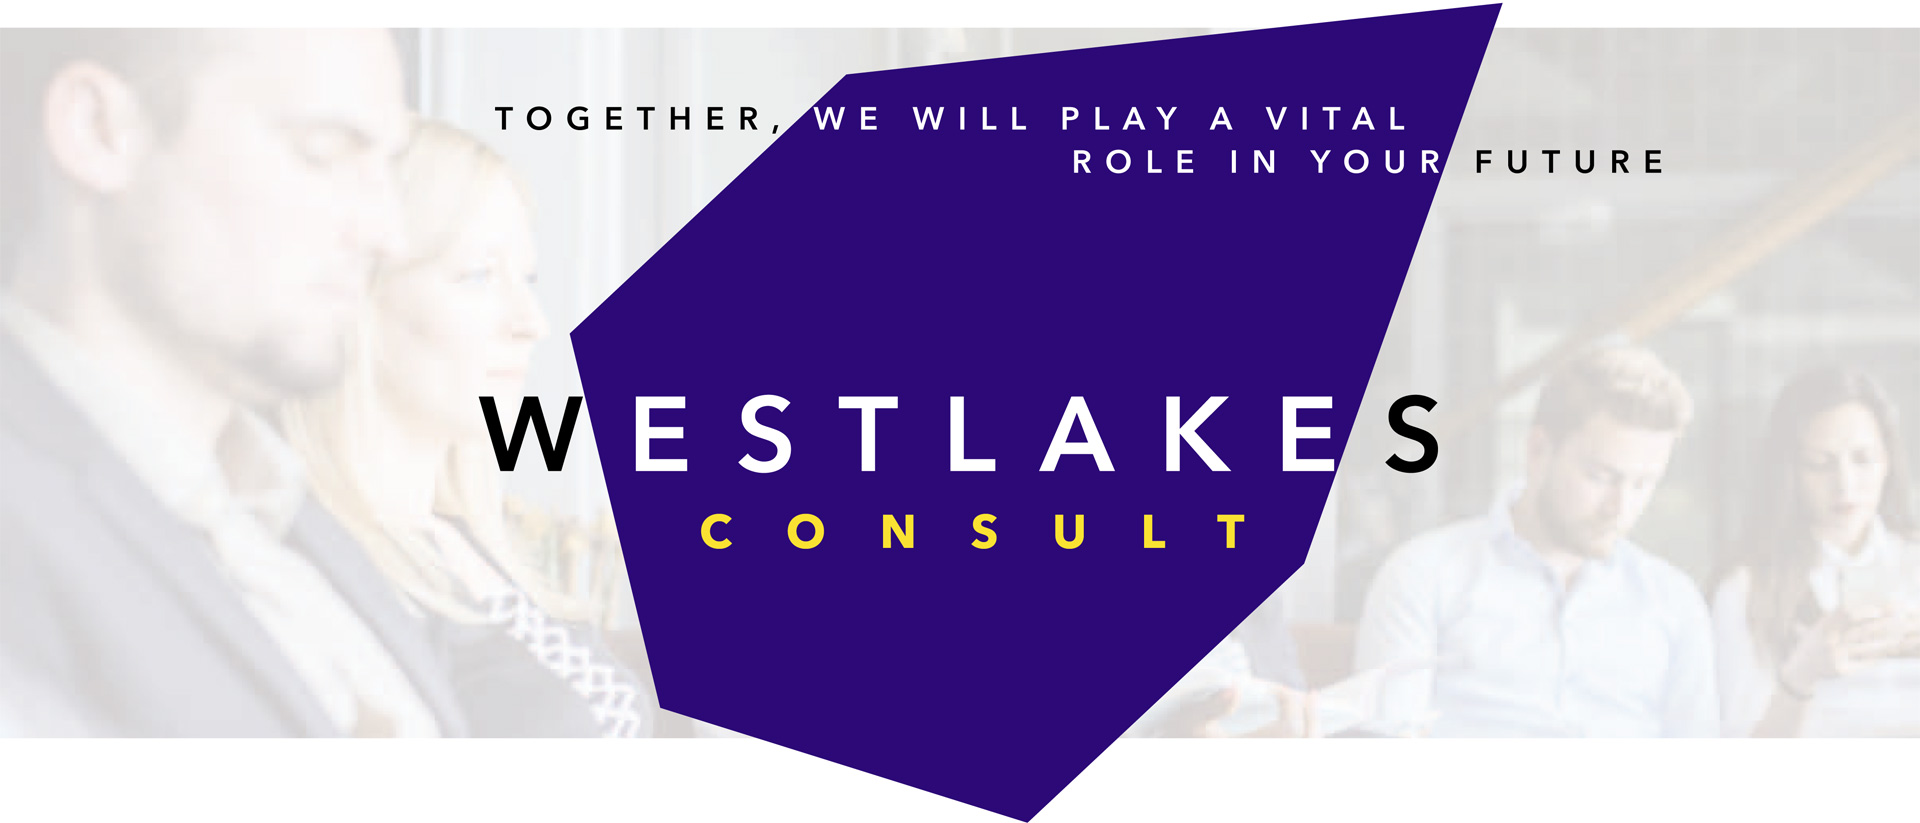 westlakes consult - contact